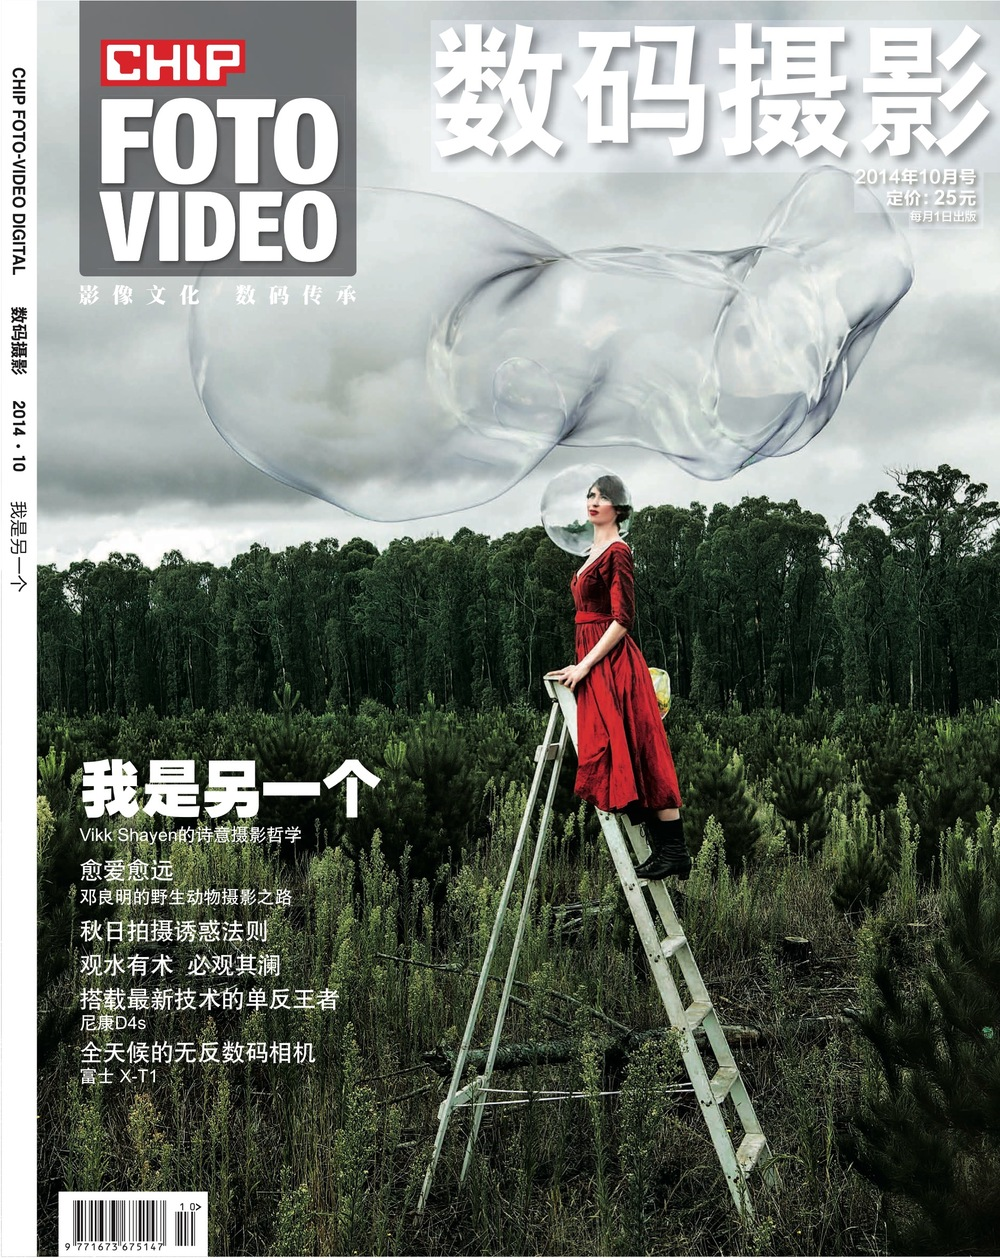 Chipfoto Magazine interview October 2014_Cover.jpeg